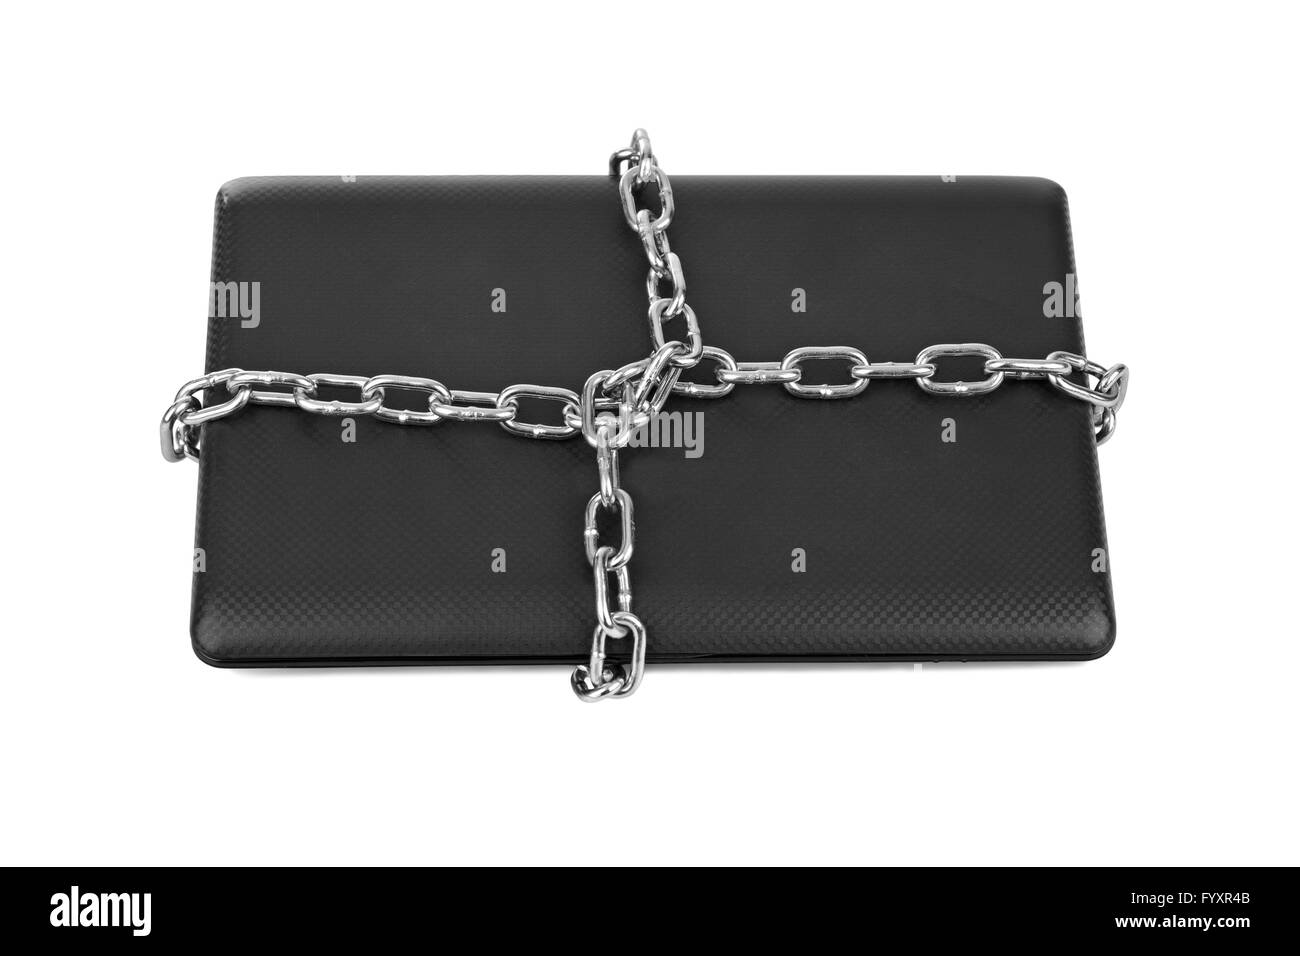 Notebook and chains - Stock Image